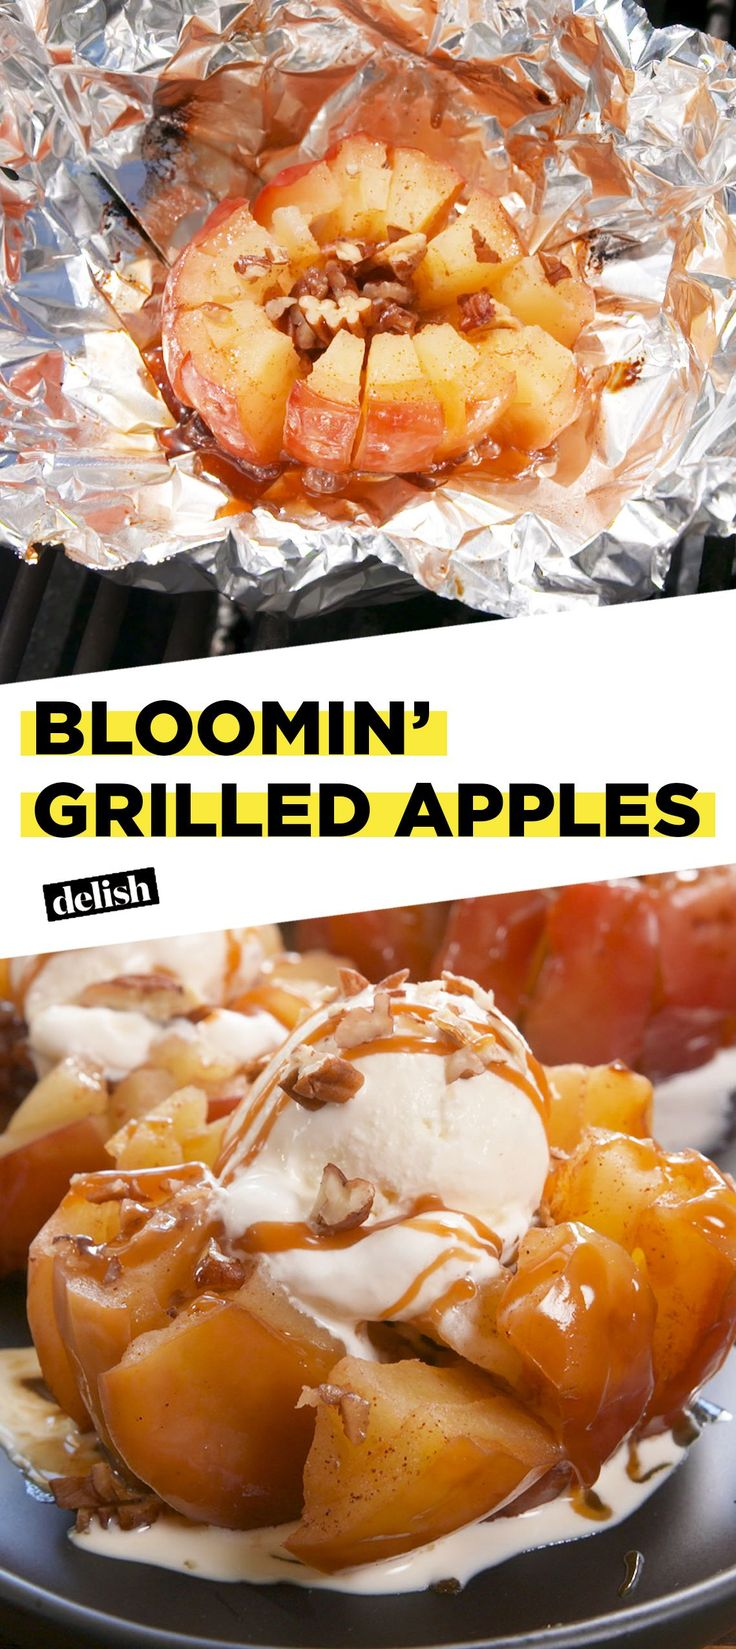 Bloomin' Grilled Apples